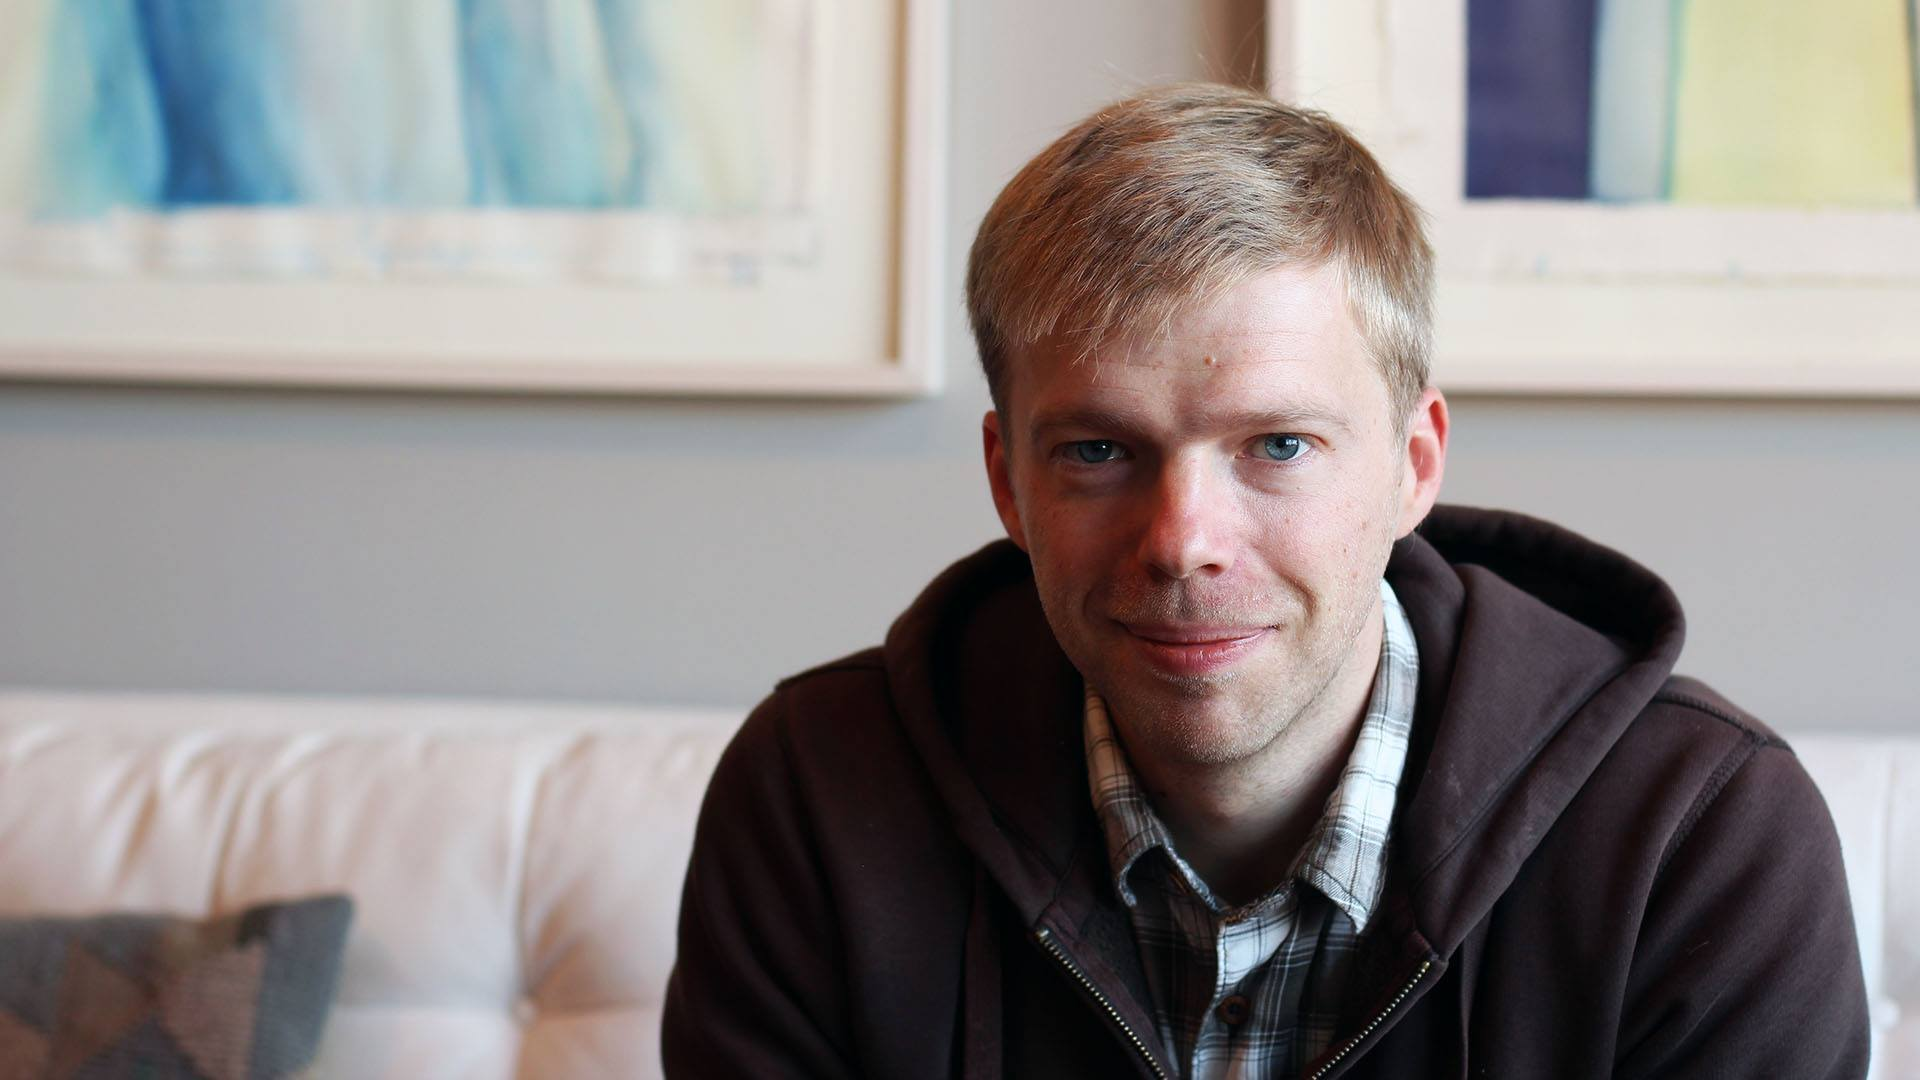 Andrew Norman, MSYO Alum.Andrew has served as Composer in Residence with the Boston Modern Orchestra Project and Opera Philadelphia, and he currently holds that post with the Los Angeles Chamber Orchestra.